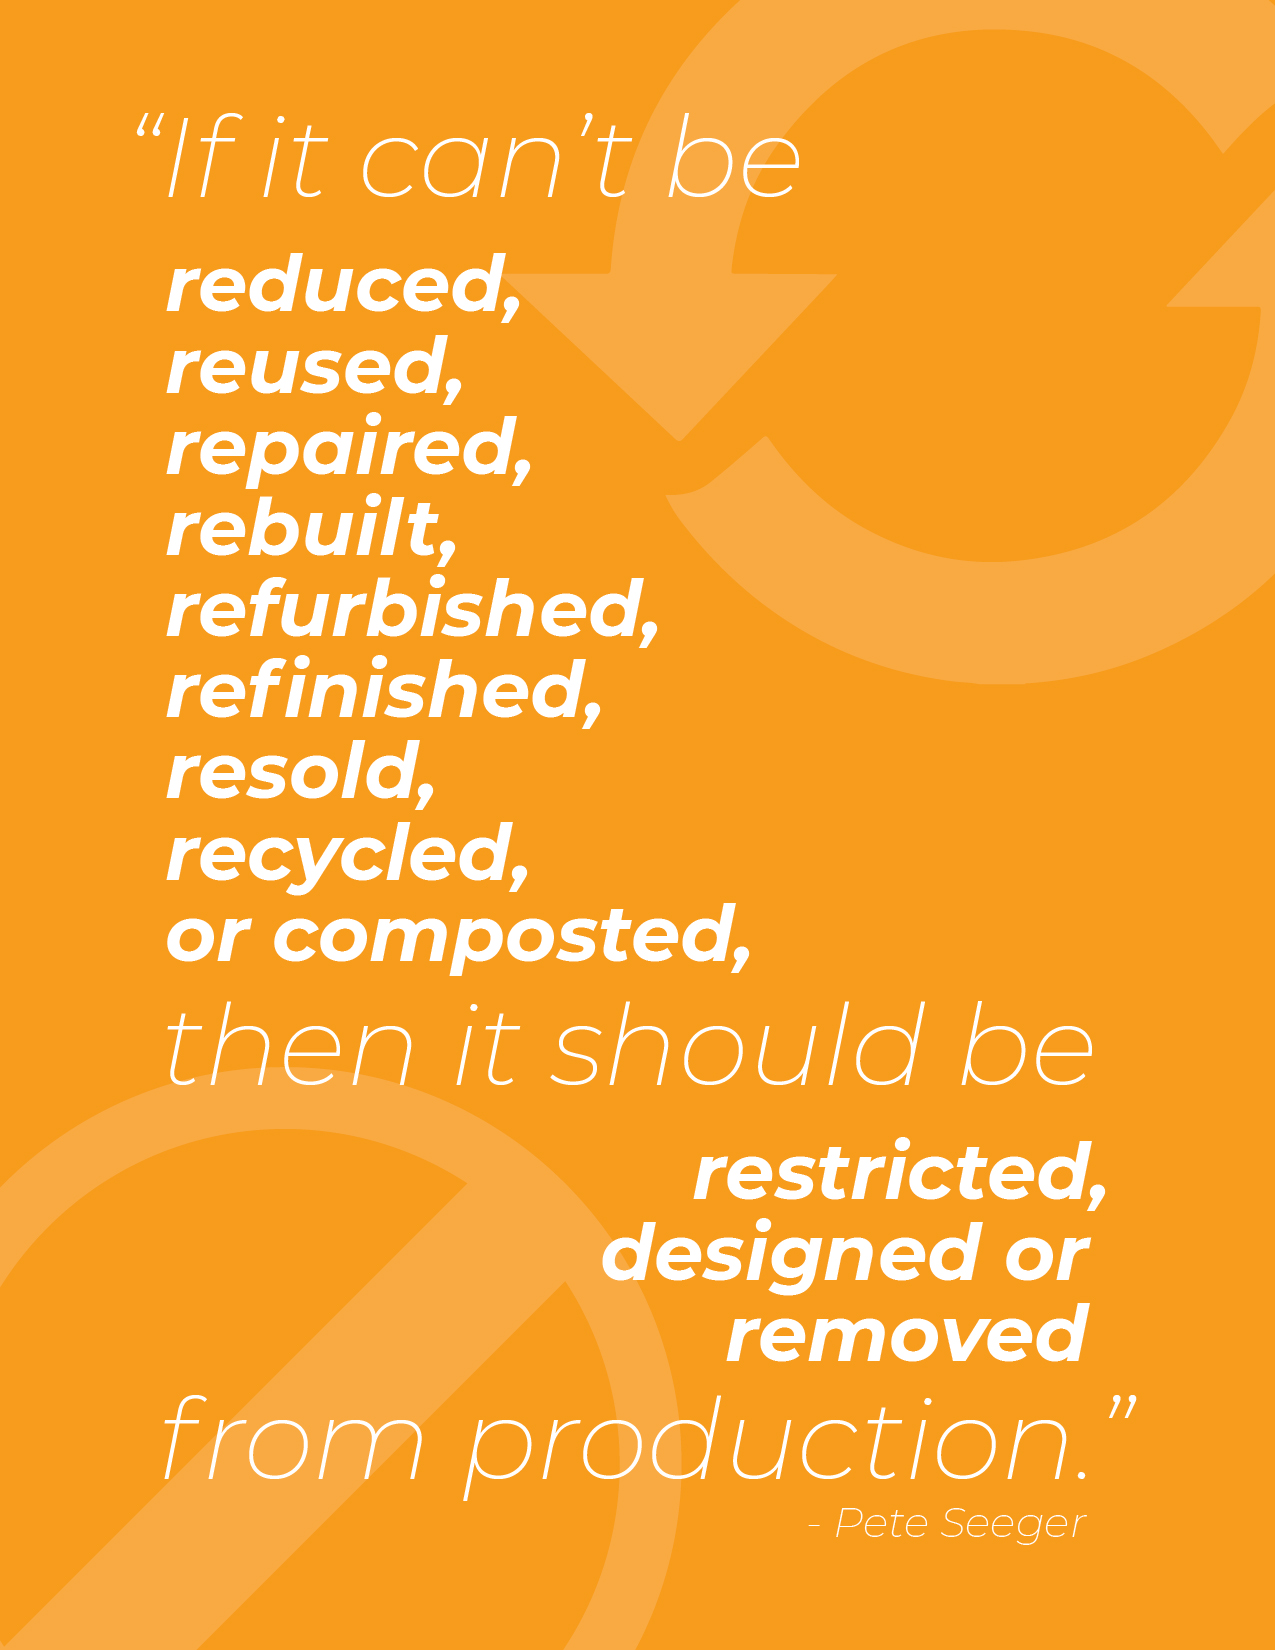 If it cant be reduced, infographic. Quoted by Pete Seeger